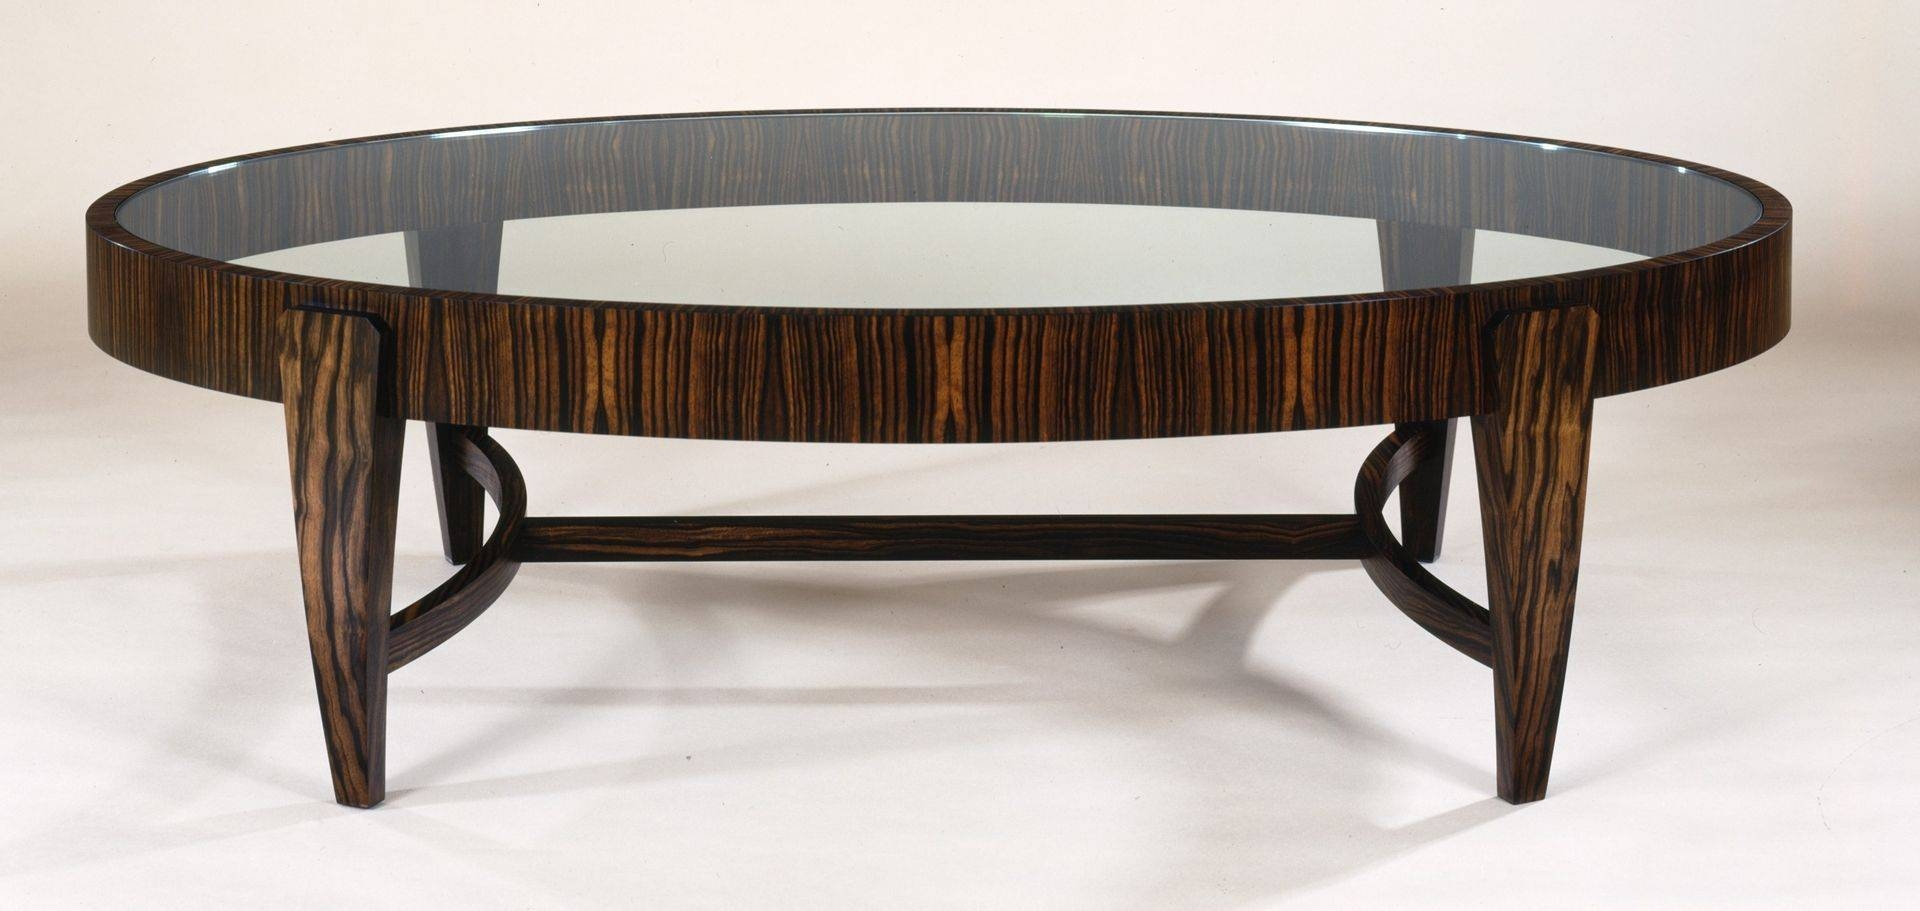 Wood Oval Coffee Table : Axiomaticaorg - Jericho Mafjar Project within Oval Glass and Wood Coffee Tables (Image 30 of 30)